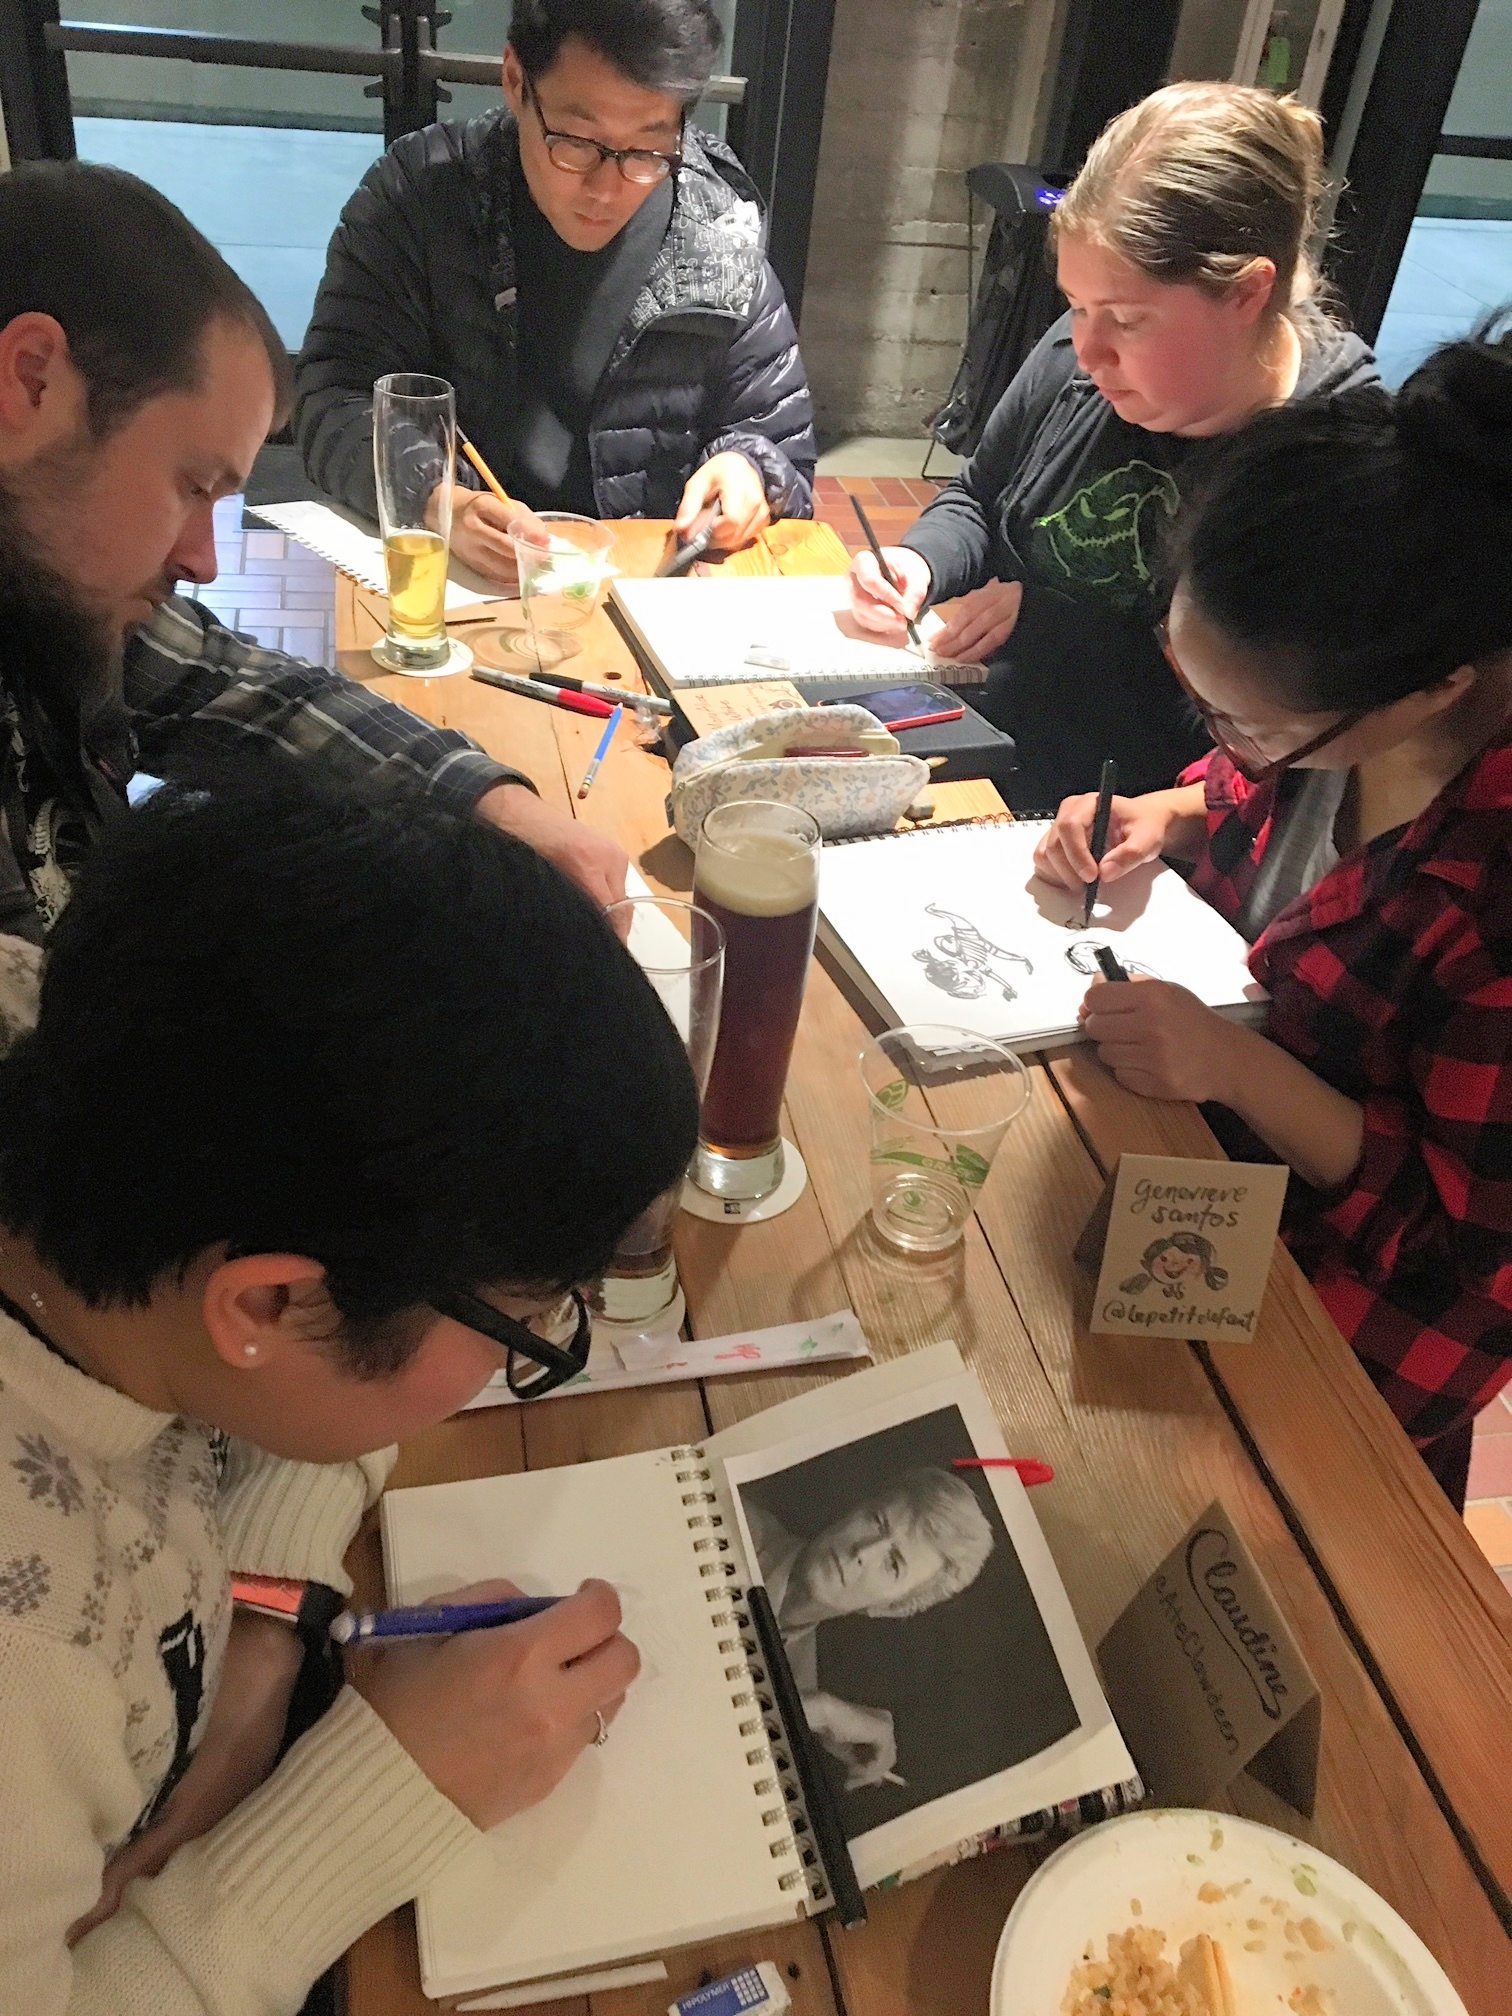 A table of artists sketching